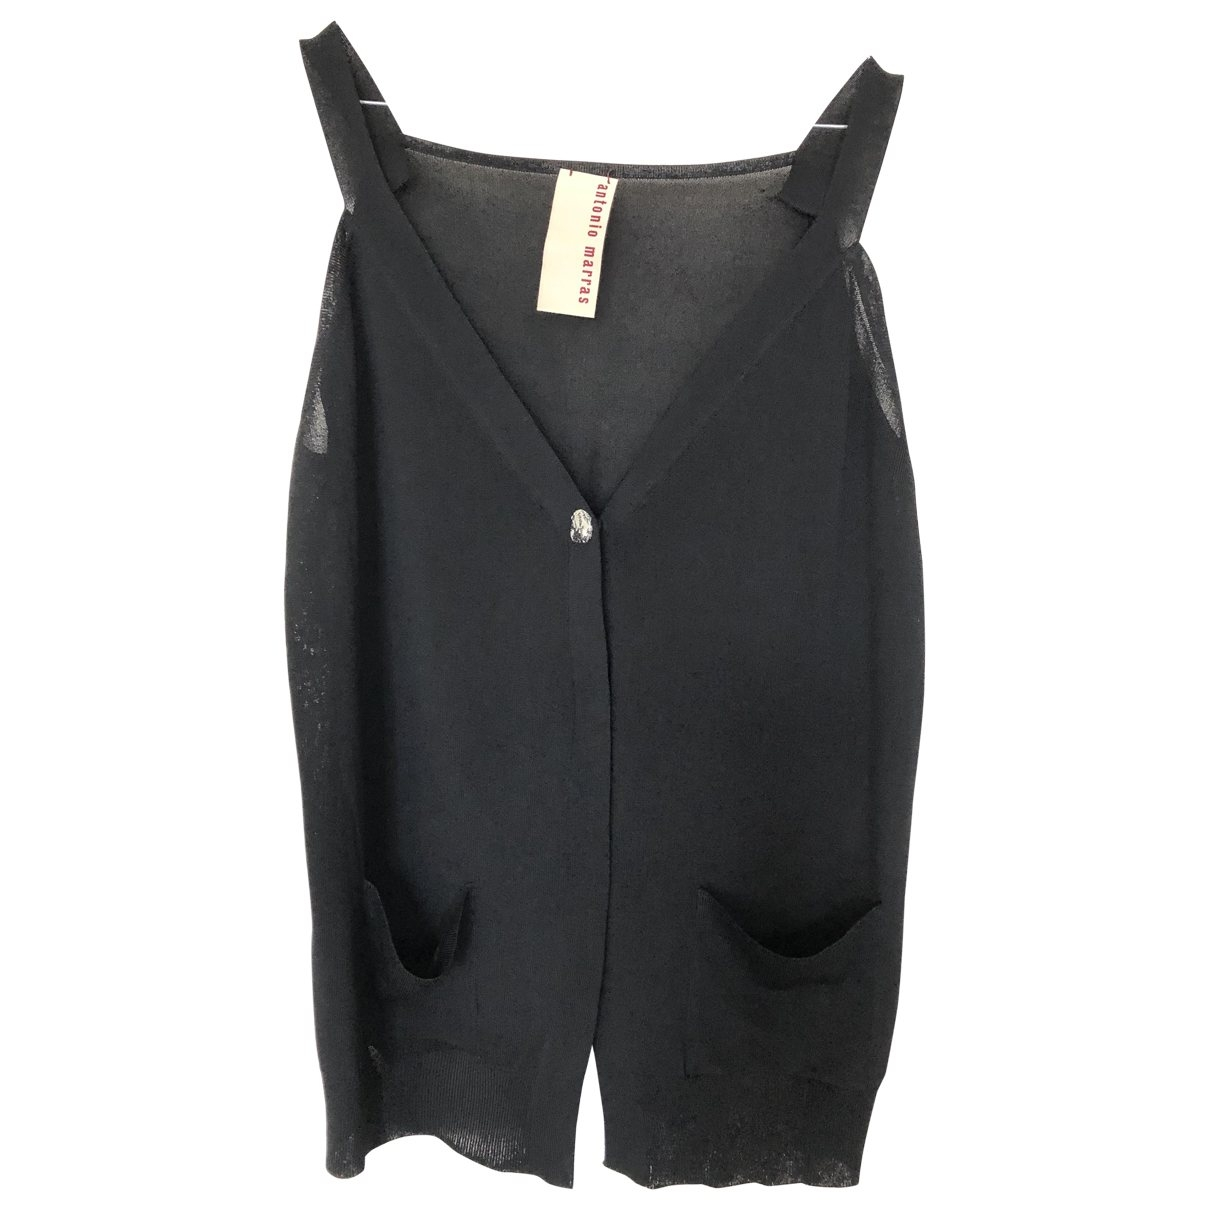 Antonio Marras \N Black  top for Women 42 IT